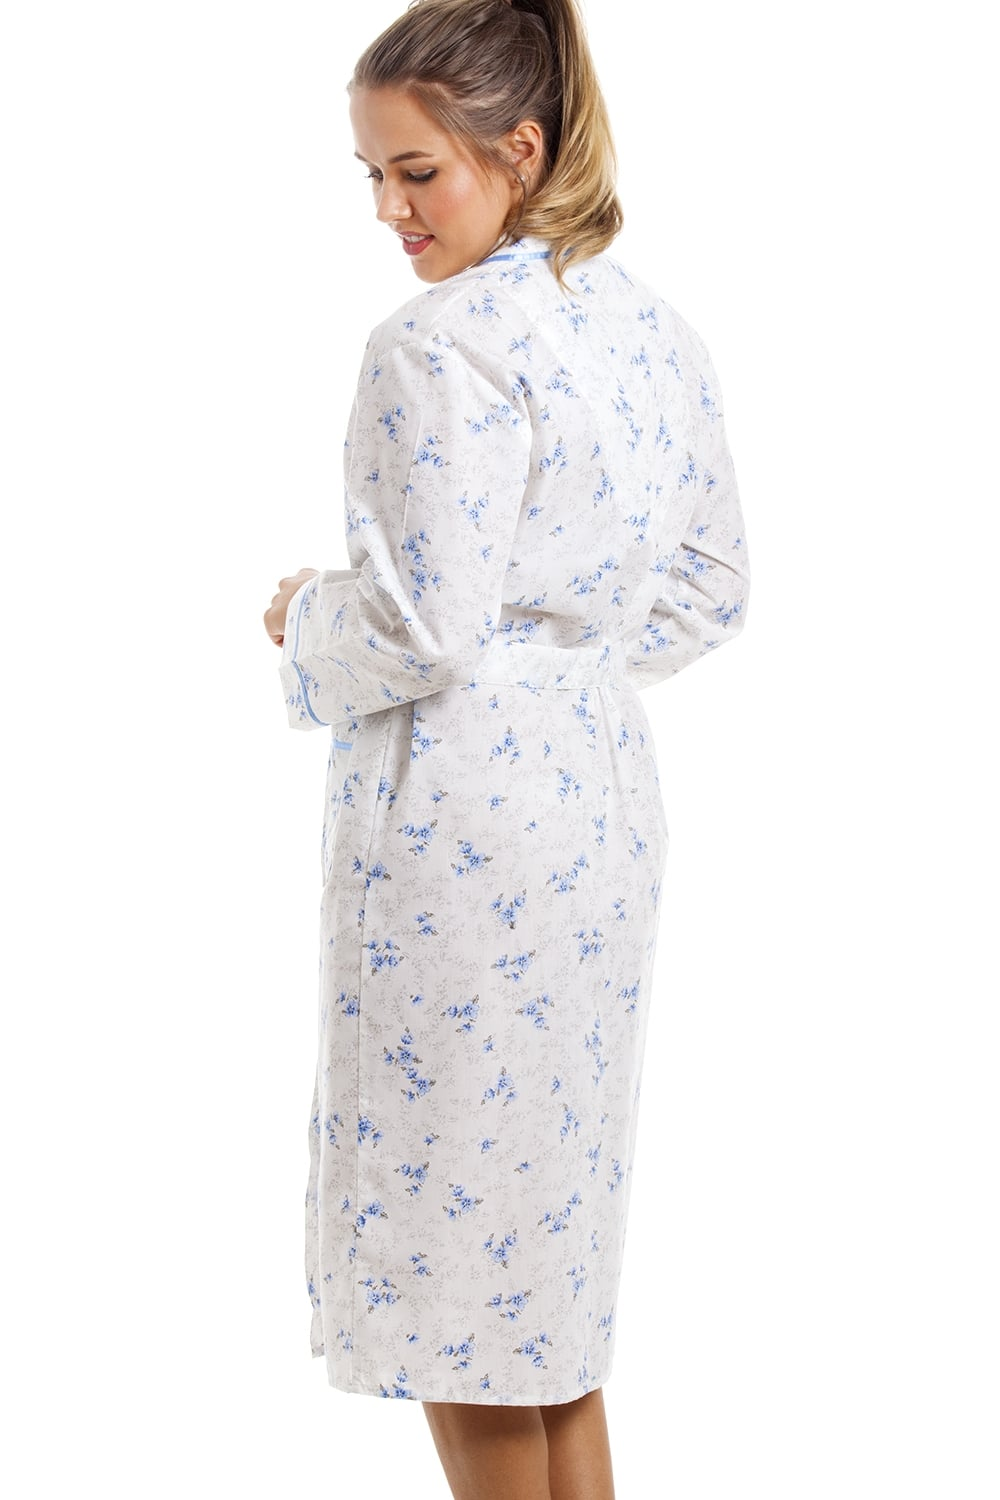 Lightweight Knee Length Long Sleeve Blue And White Floral Dressing Gown